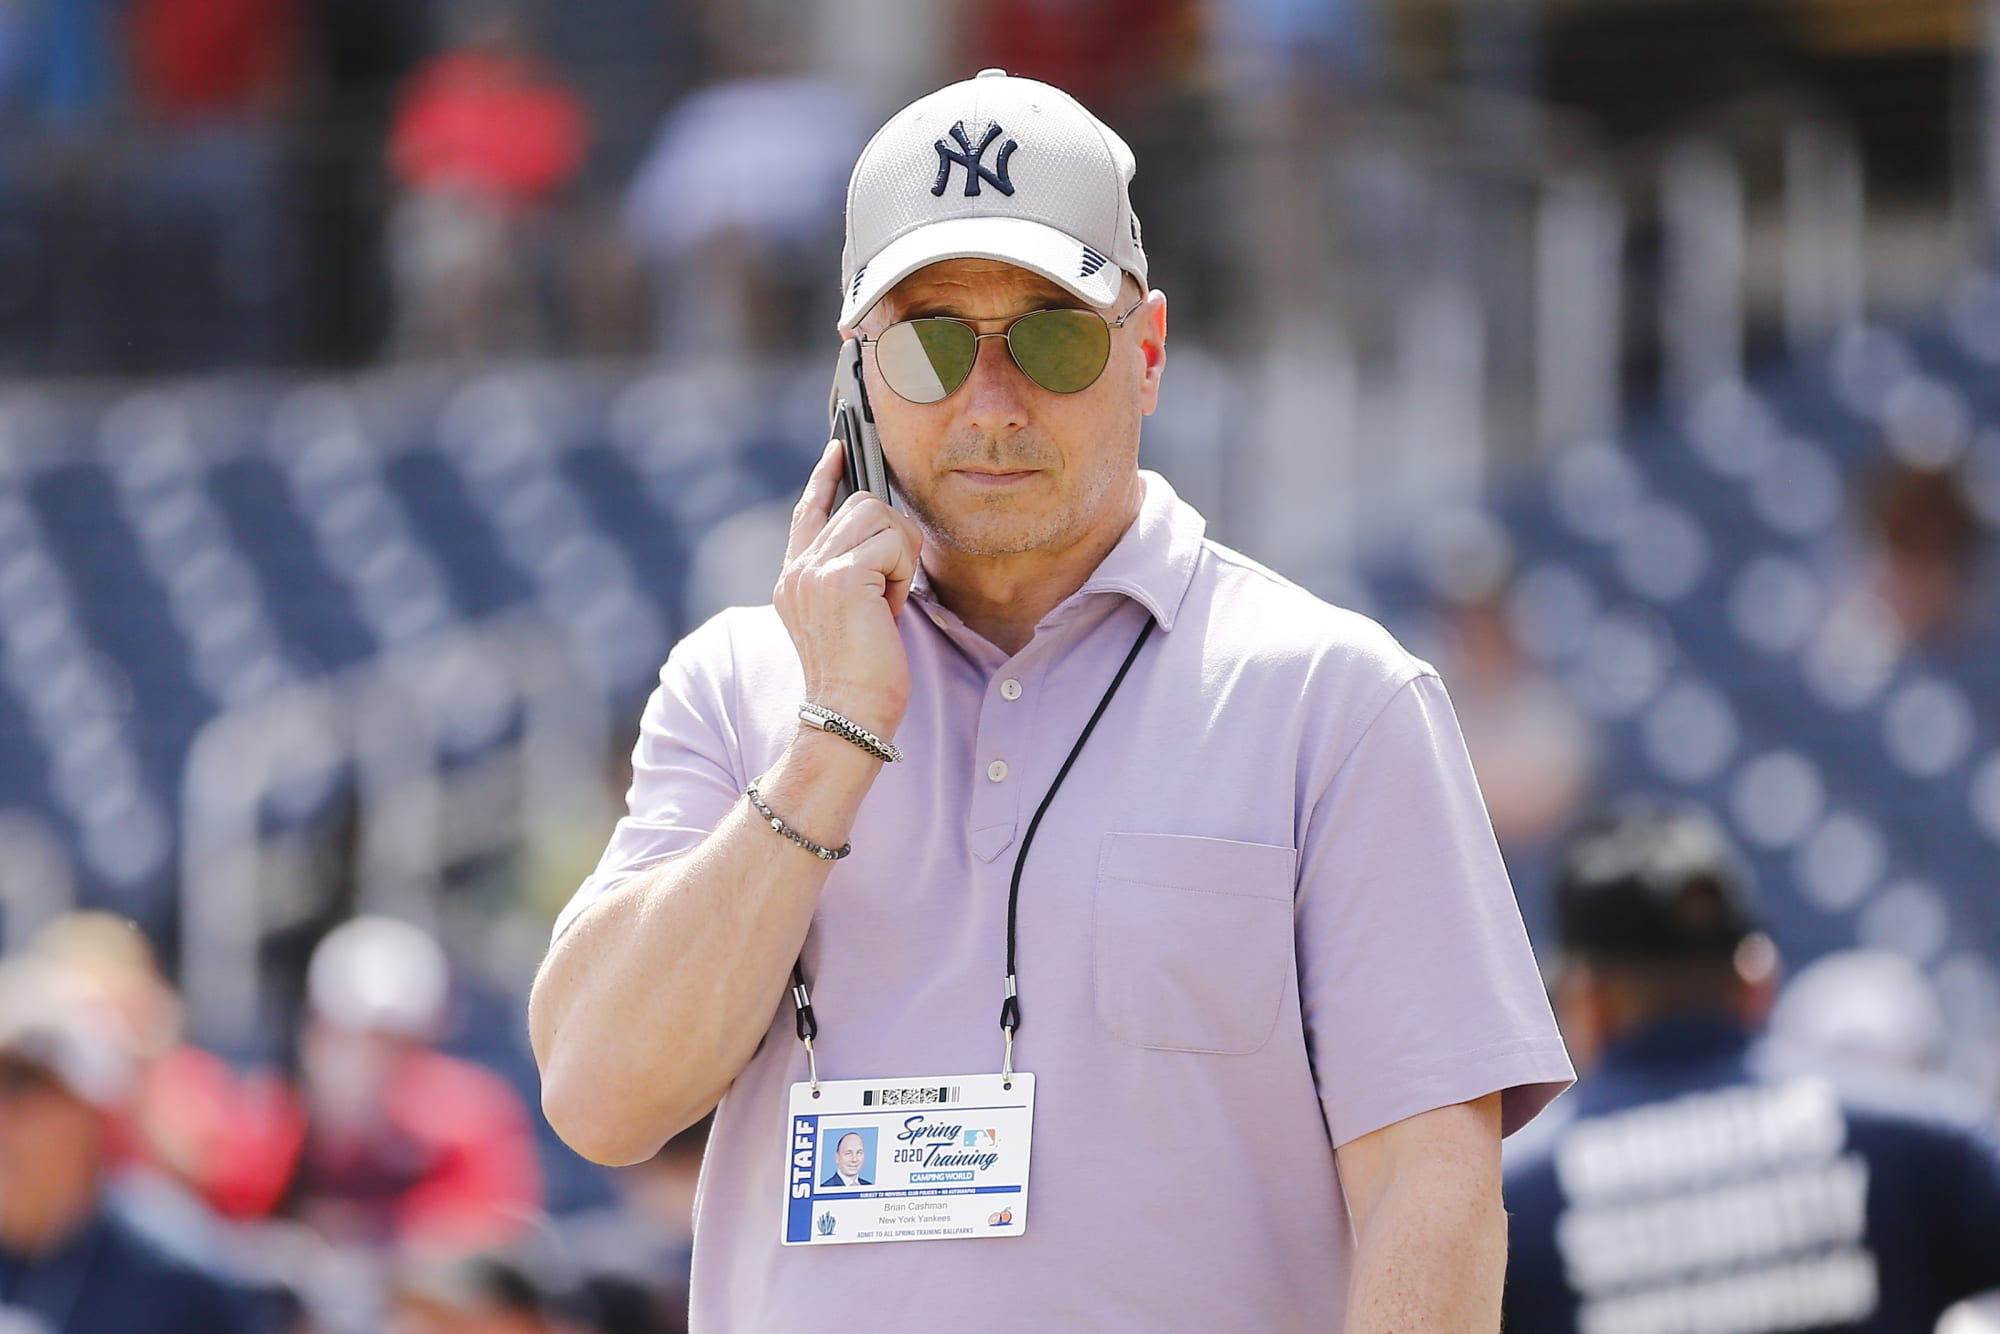 Yankees: 3 players Brian Cashman would like to cut, but can't